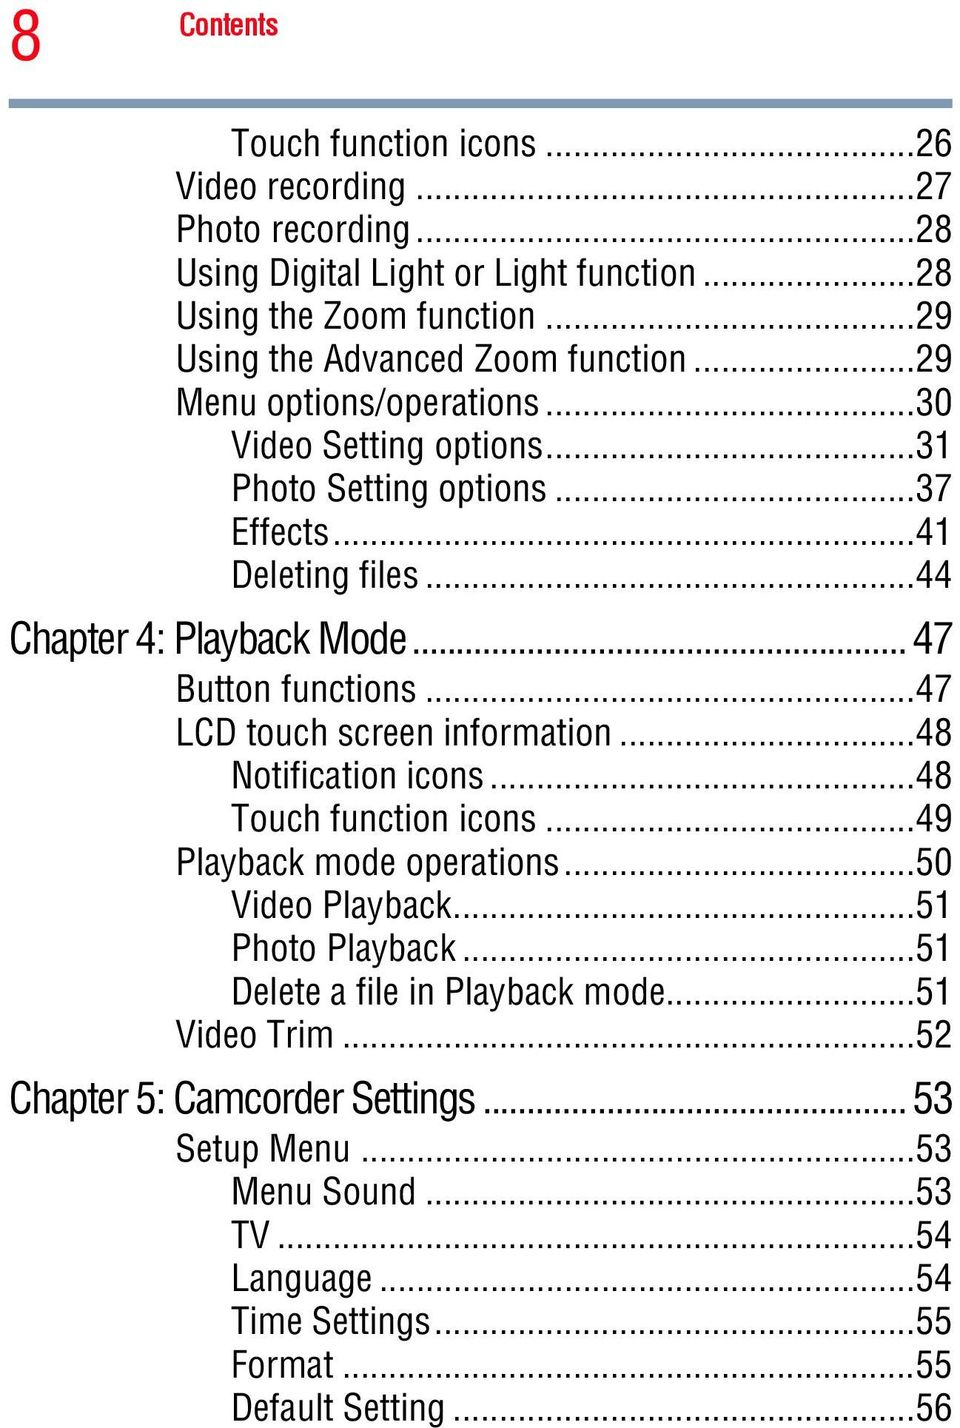 ..44 Chapter 4: Playback Mode... 47 Button functions...47 LCD touch screen information...48 Notification icons...48 Touch function icons...49 Playback mode operations.